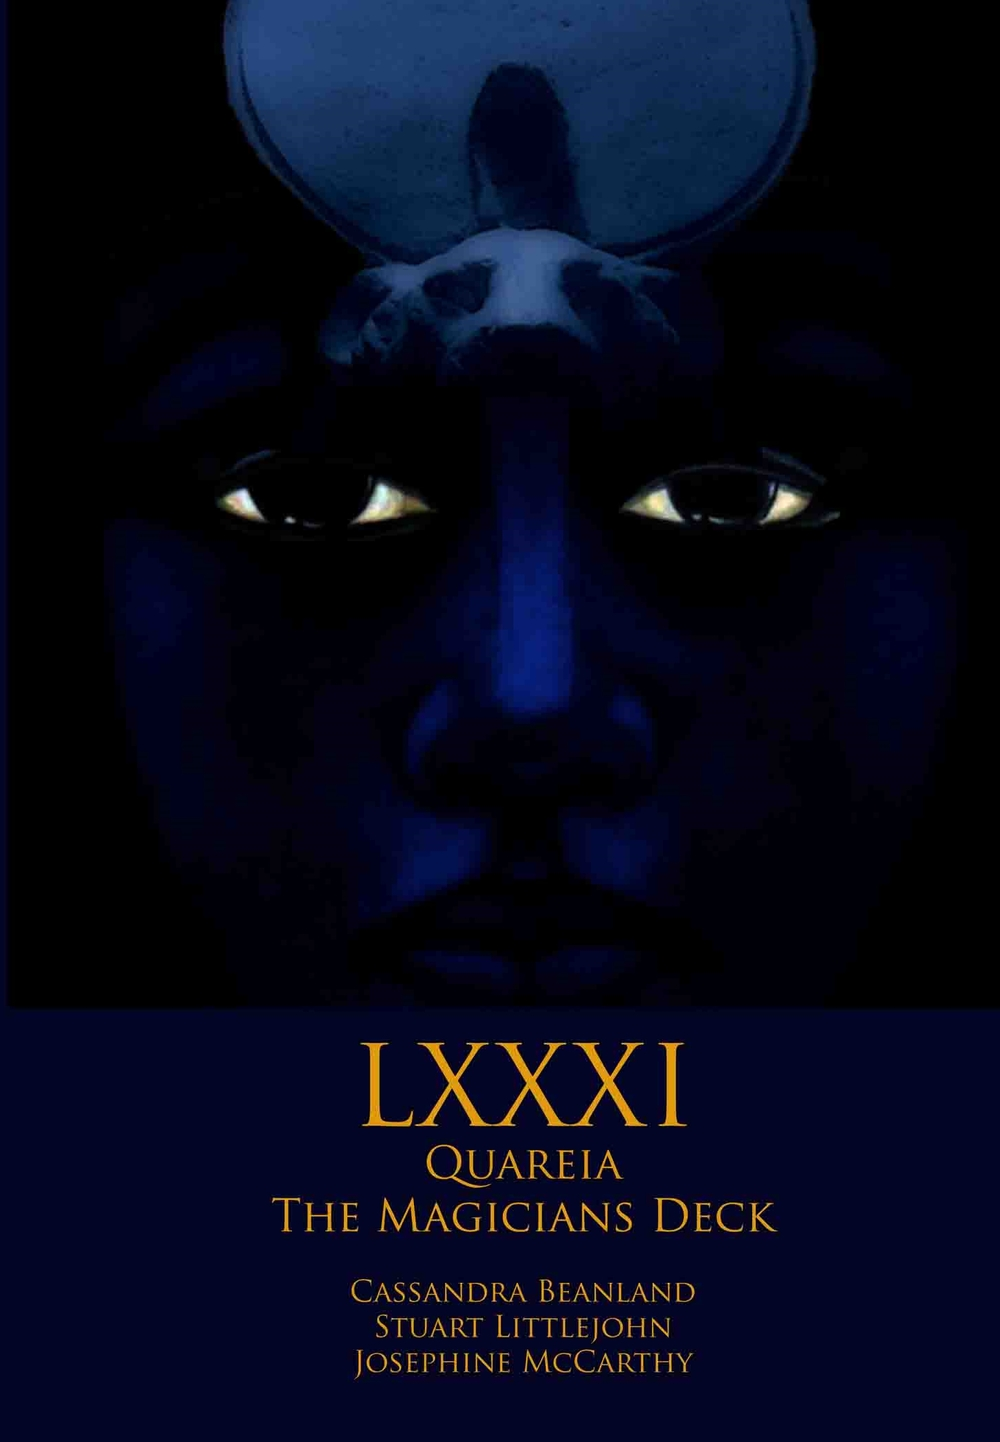 click to follow to LXXXI page